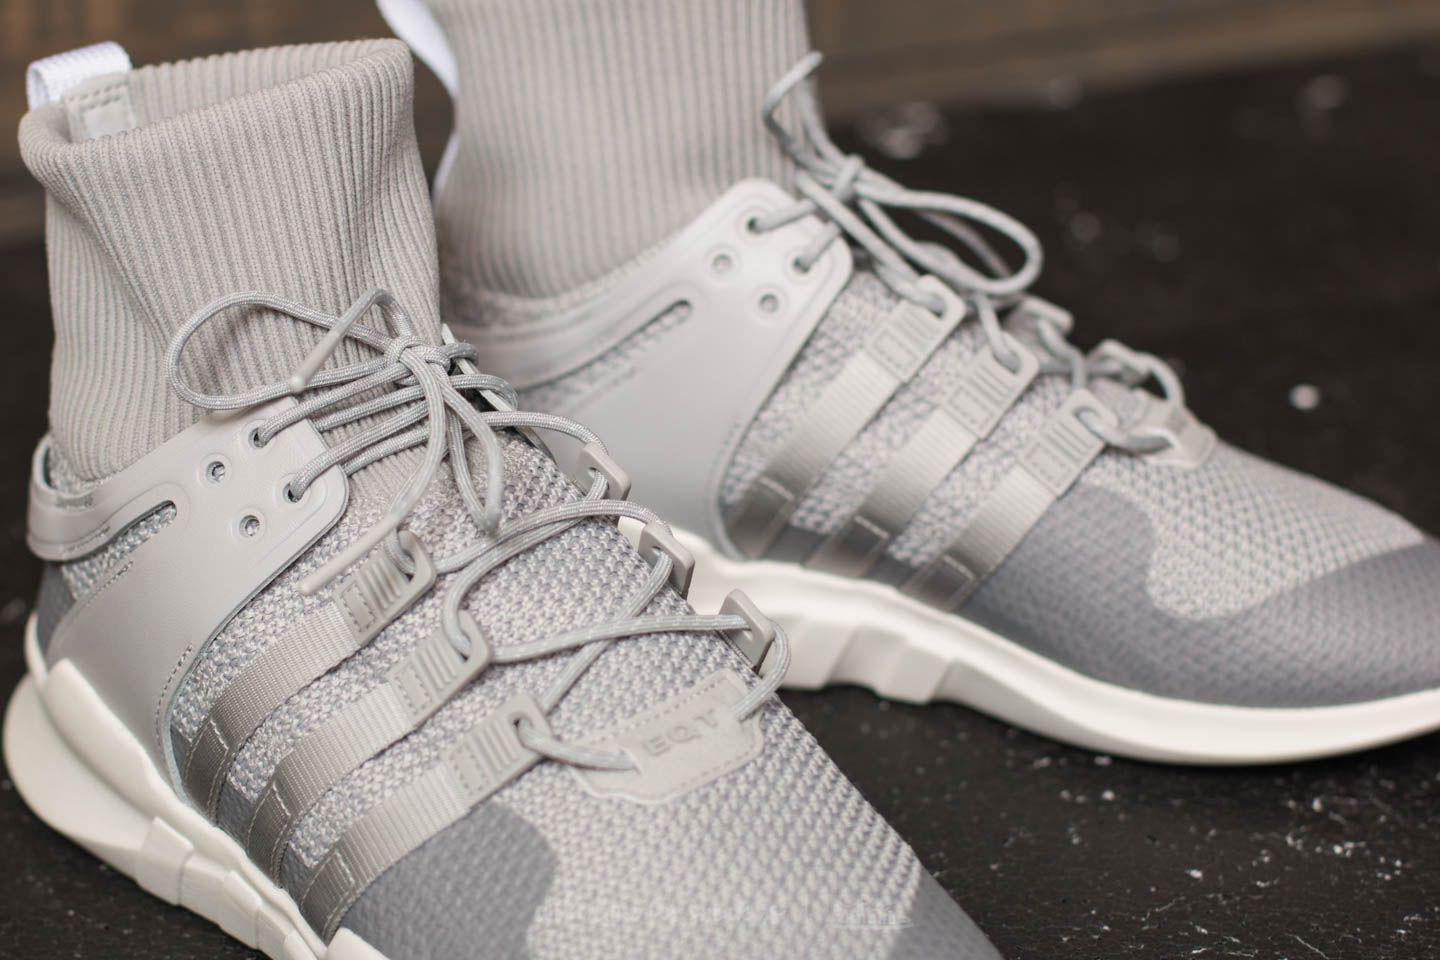 official photos 7a243 7c040 Lyst - adidas Originals Adidas Eqt Support Adv Winter Grey T